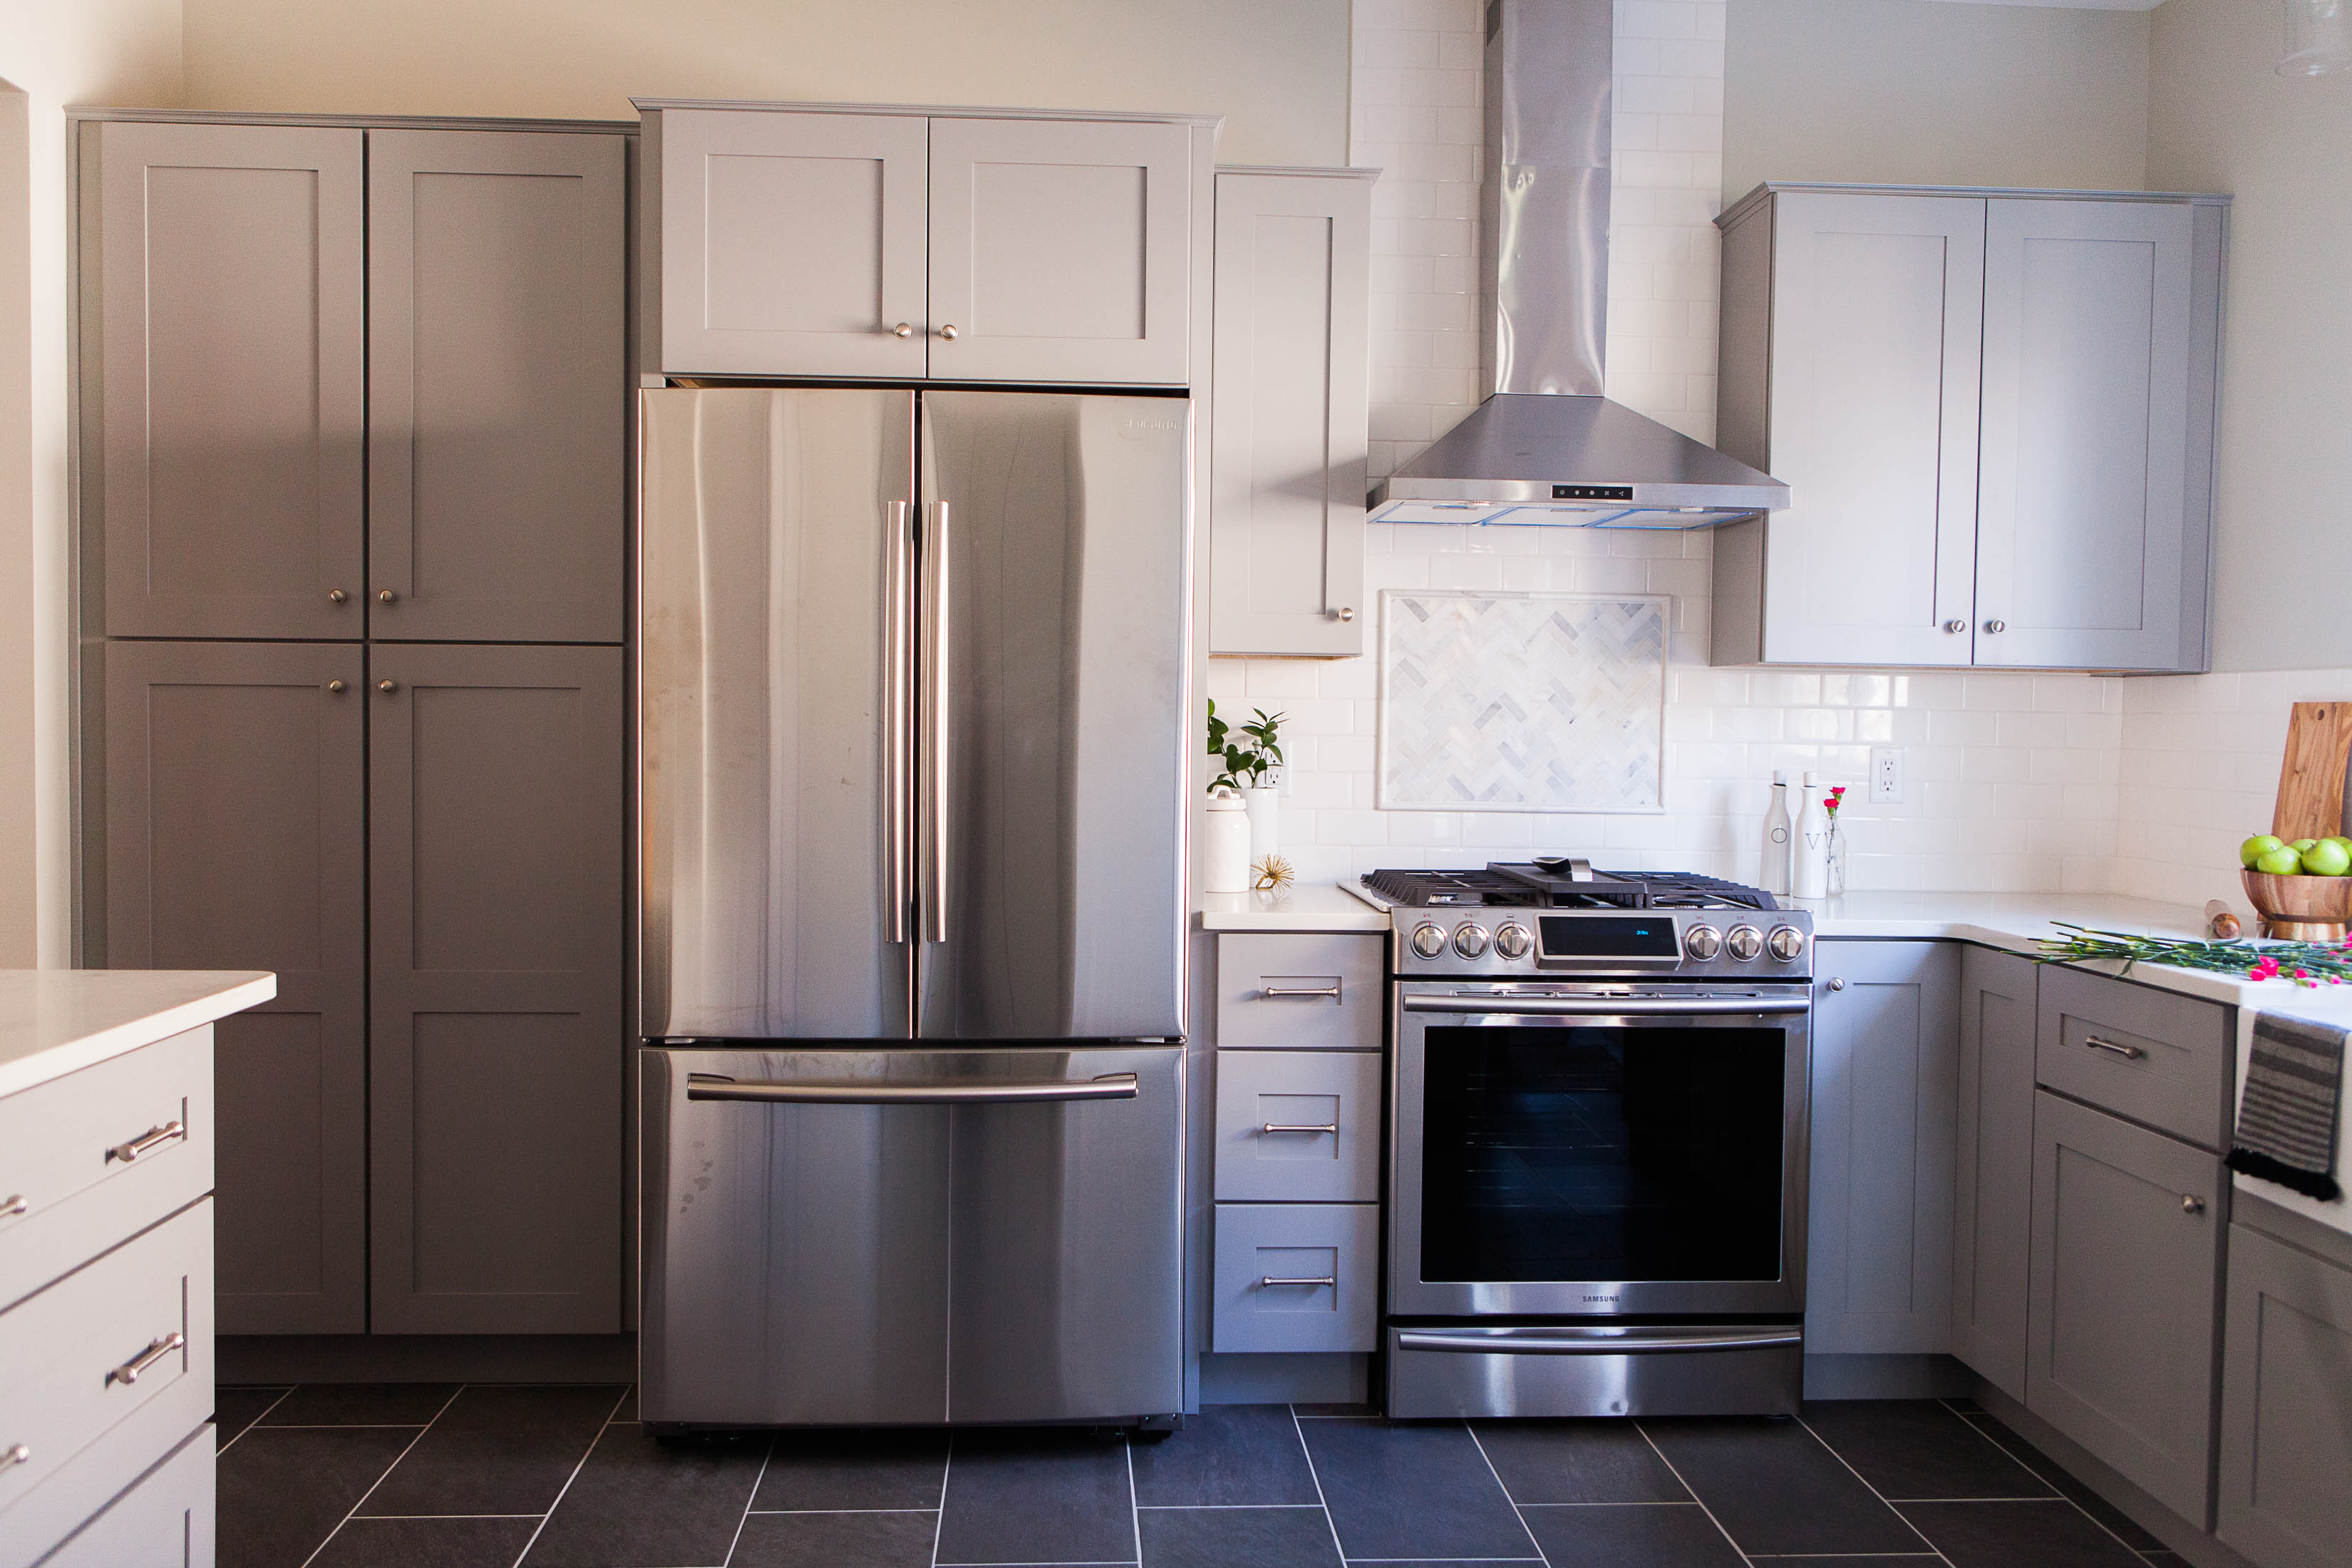 We LOVE a good kitchen remodel. But prioritizing function doesn't mean we sacrifice design. You'll drool over the cool gray & white upgrades in this space.